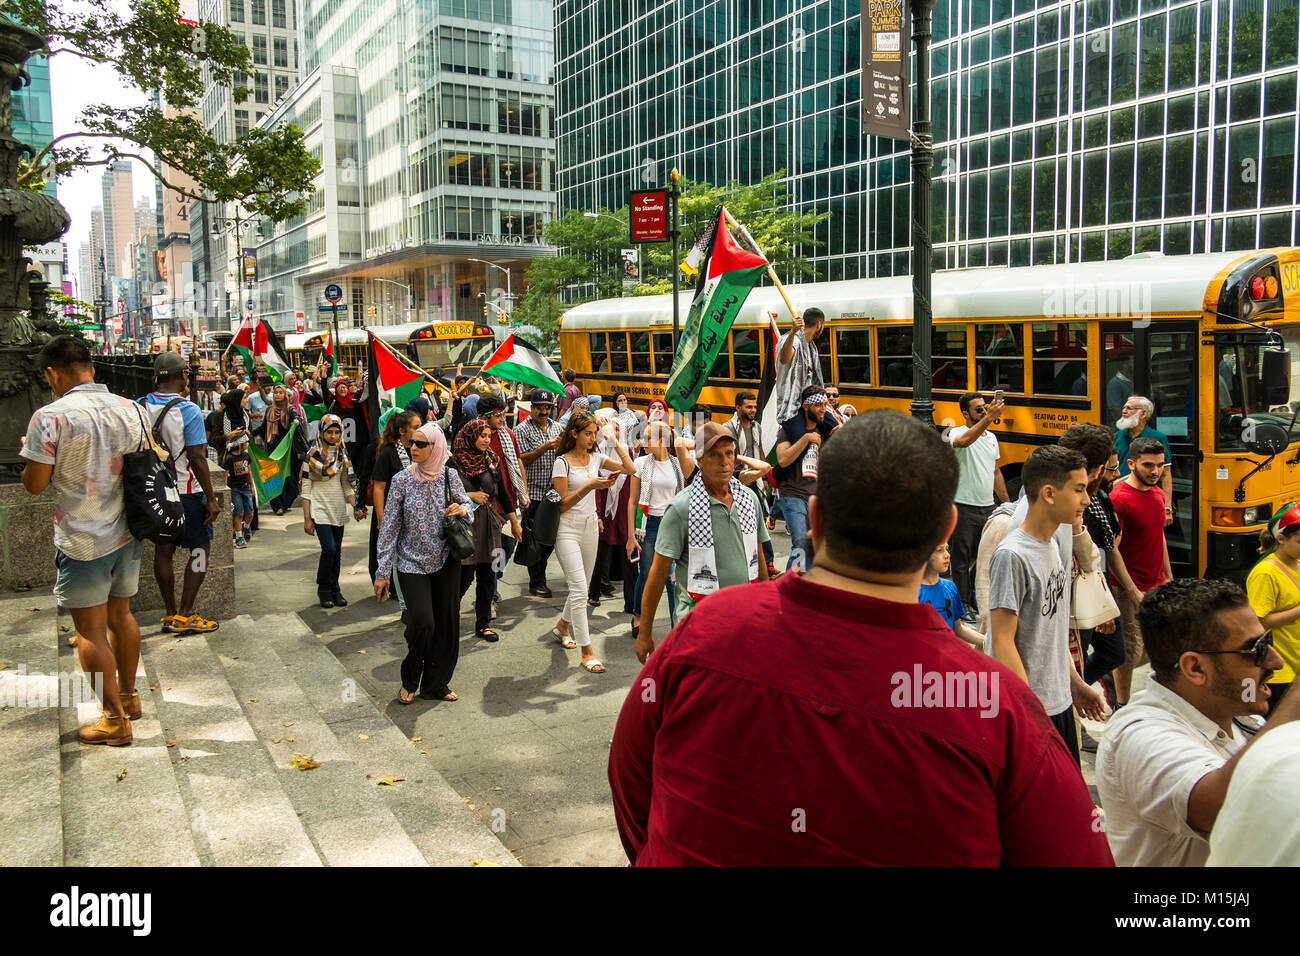 A 'Free Palestine' procession in Bryant Park, new York City - Stock Image